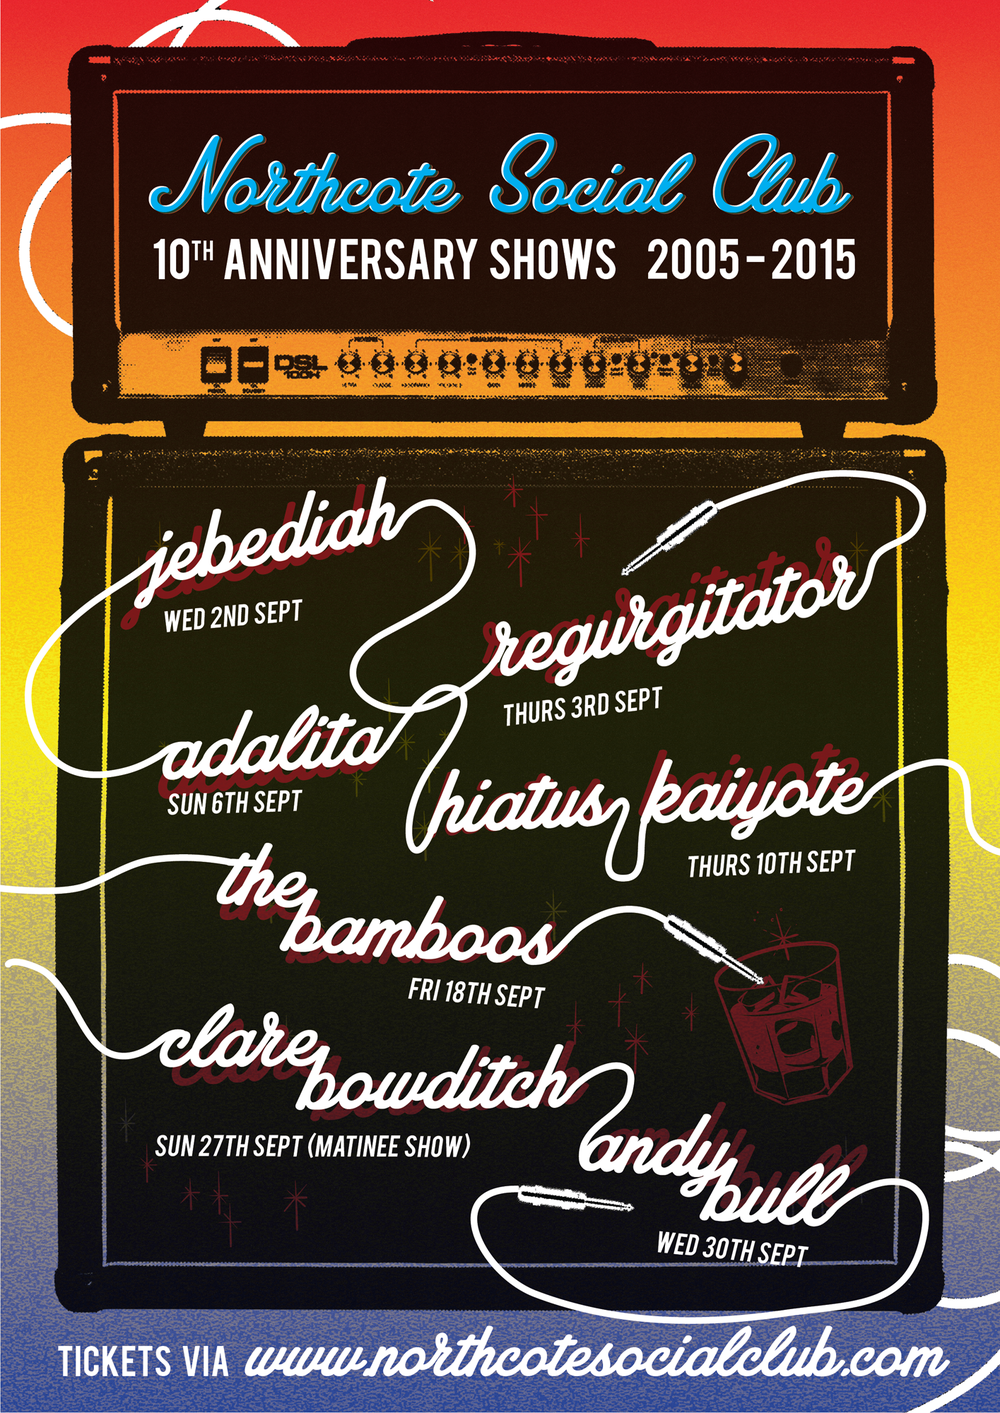 Northcote SC 10th anniversary poster.jpg